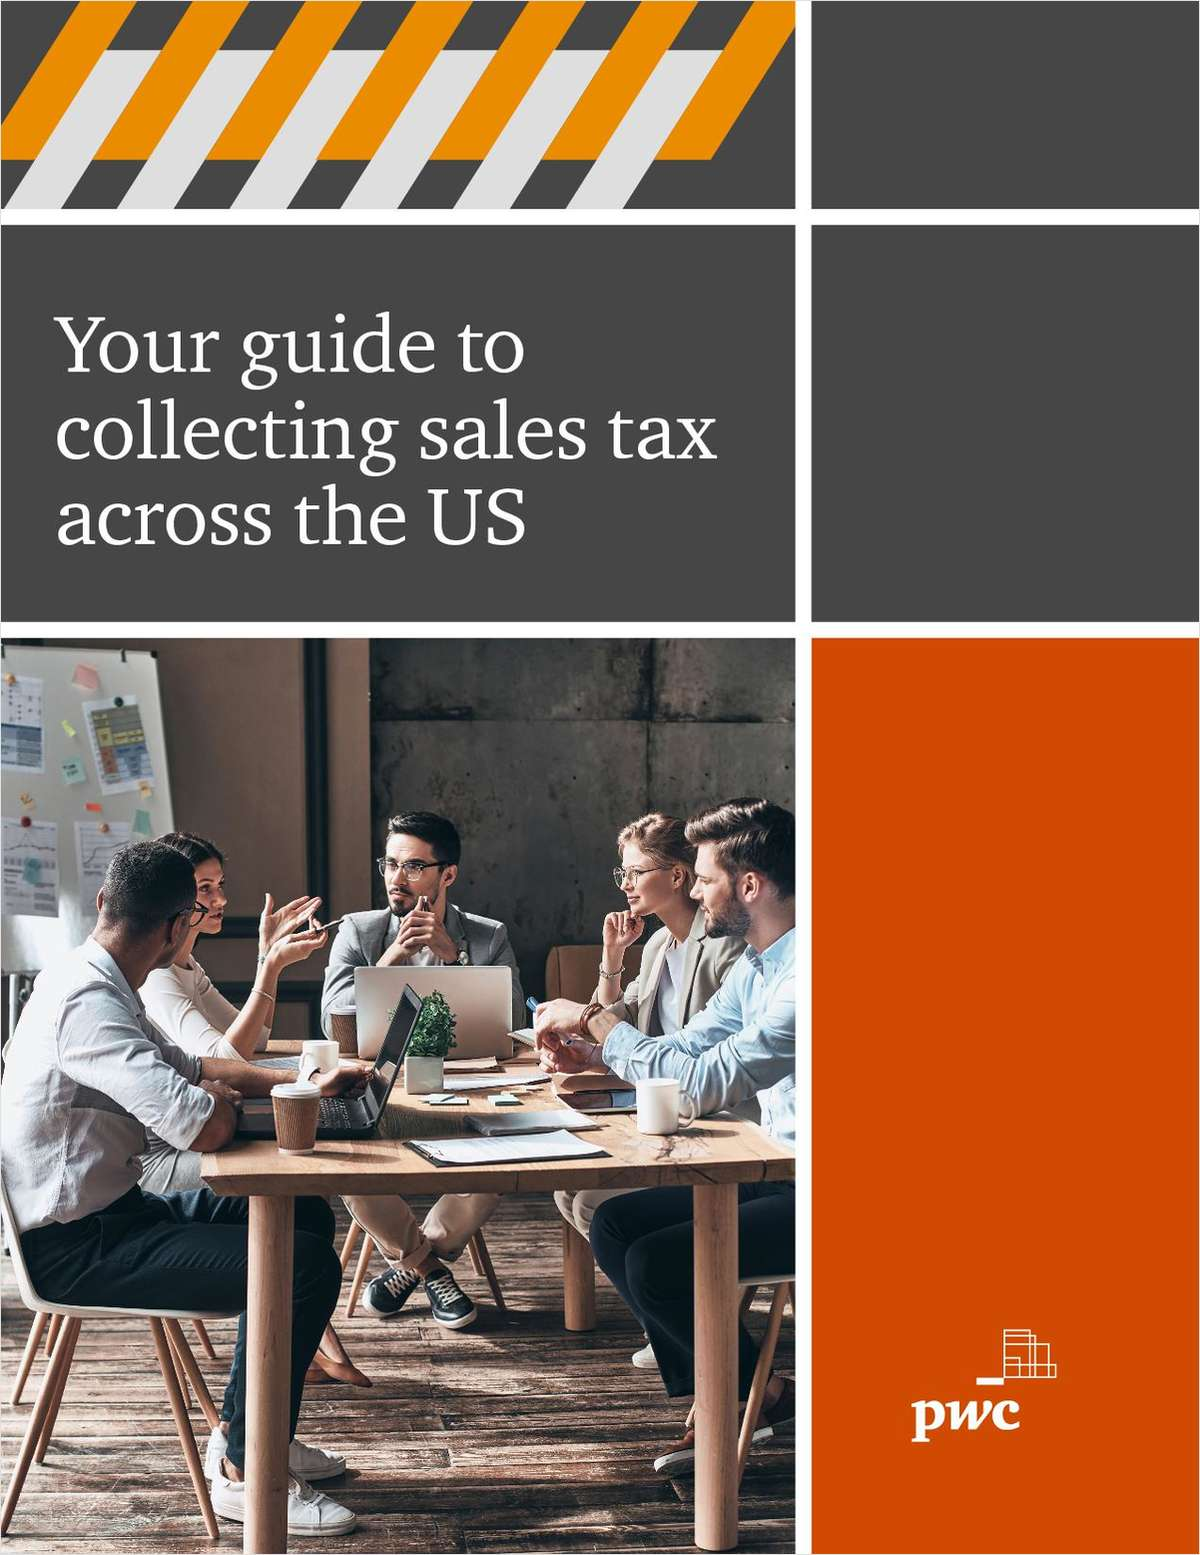 PwC TaxVerse: Your Guide to Collecting Sales Tax Across the U.S.